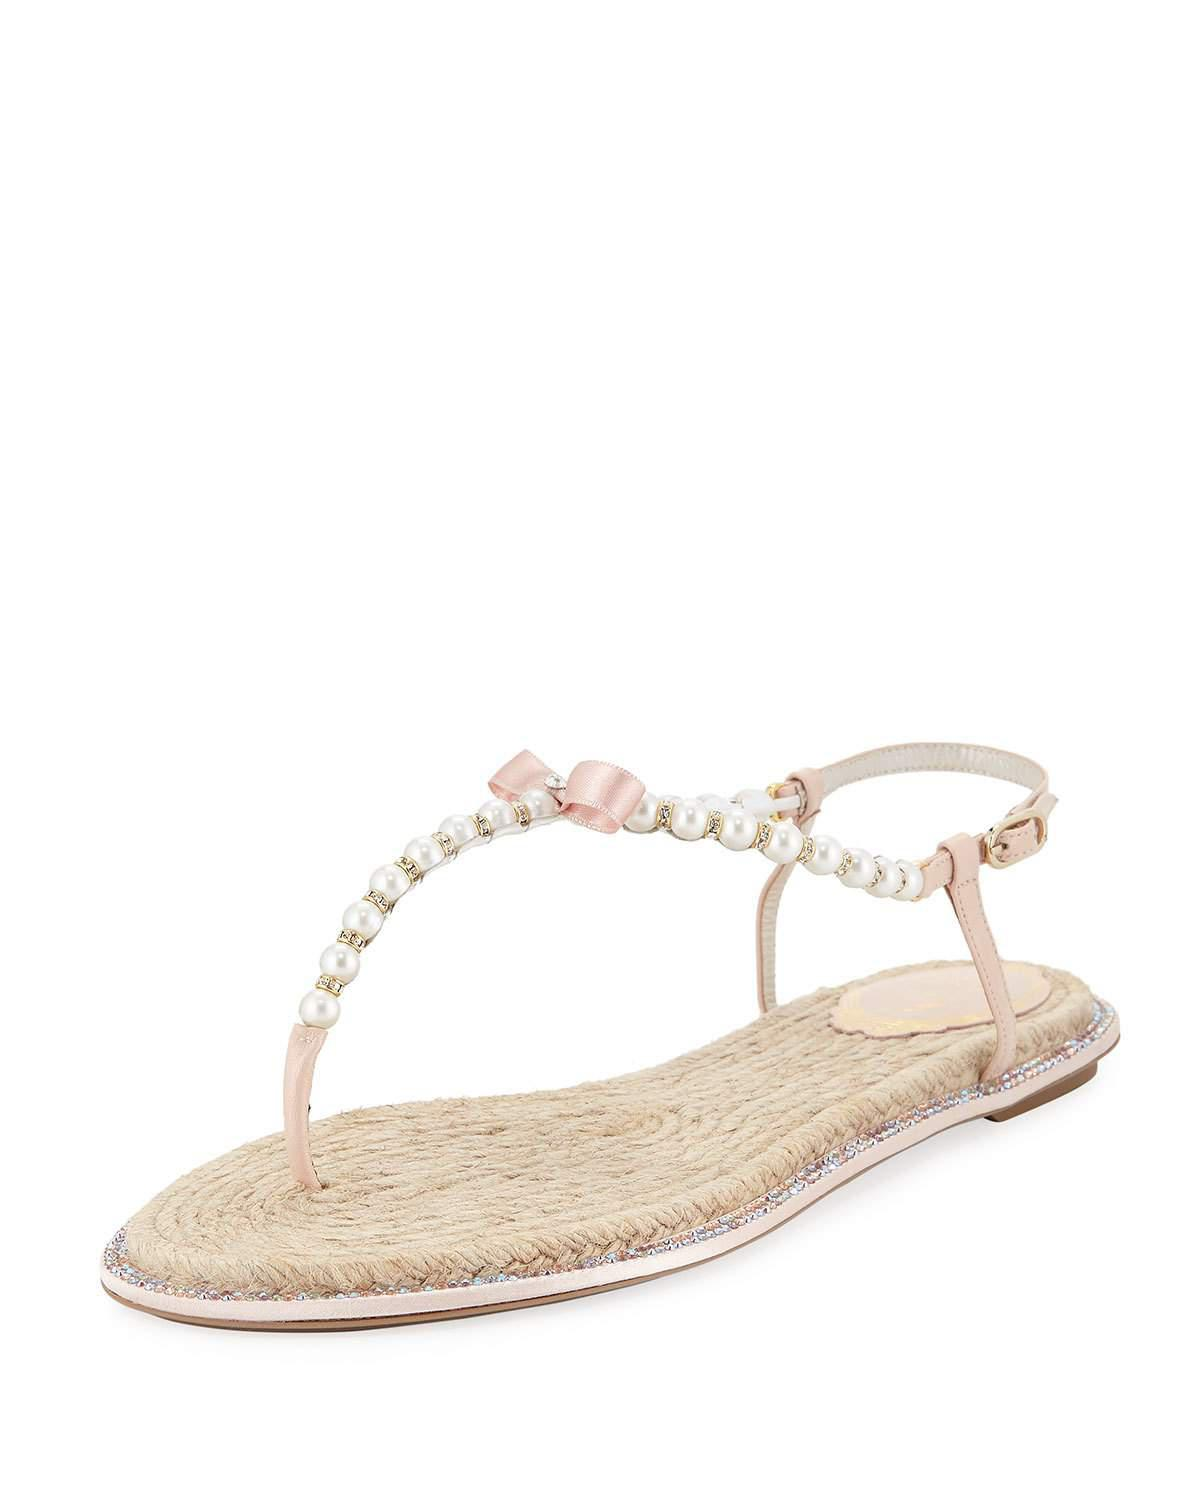 481c225262f35 RenÉ Caovilla Pearly Flat Thong Sandals In Nude